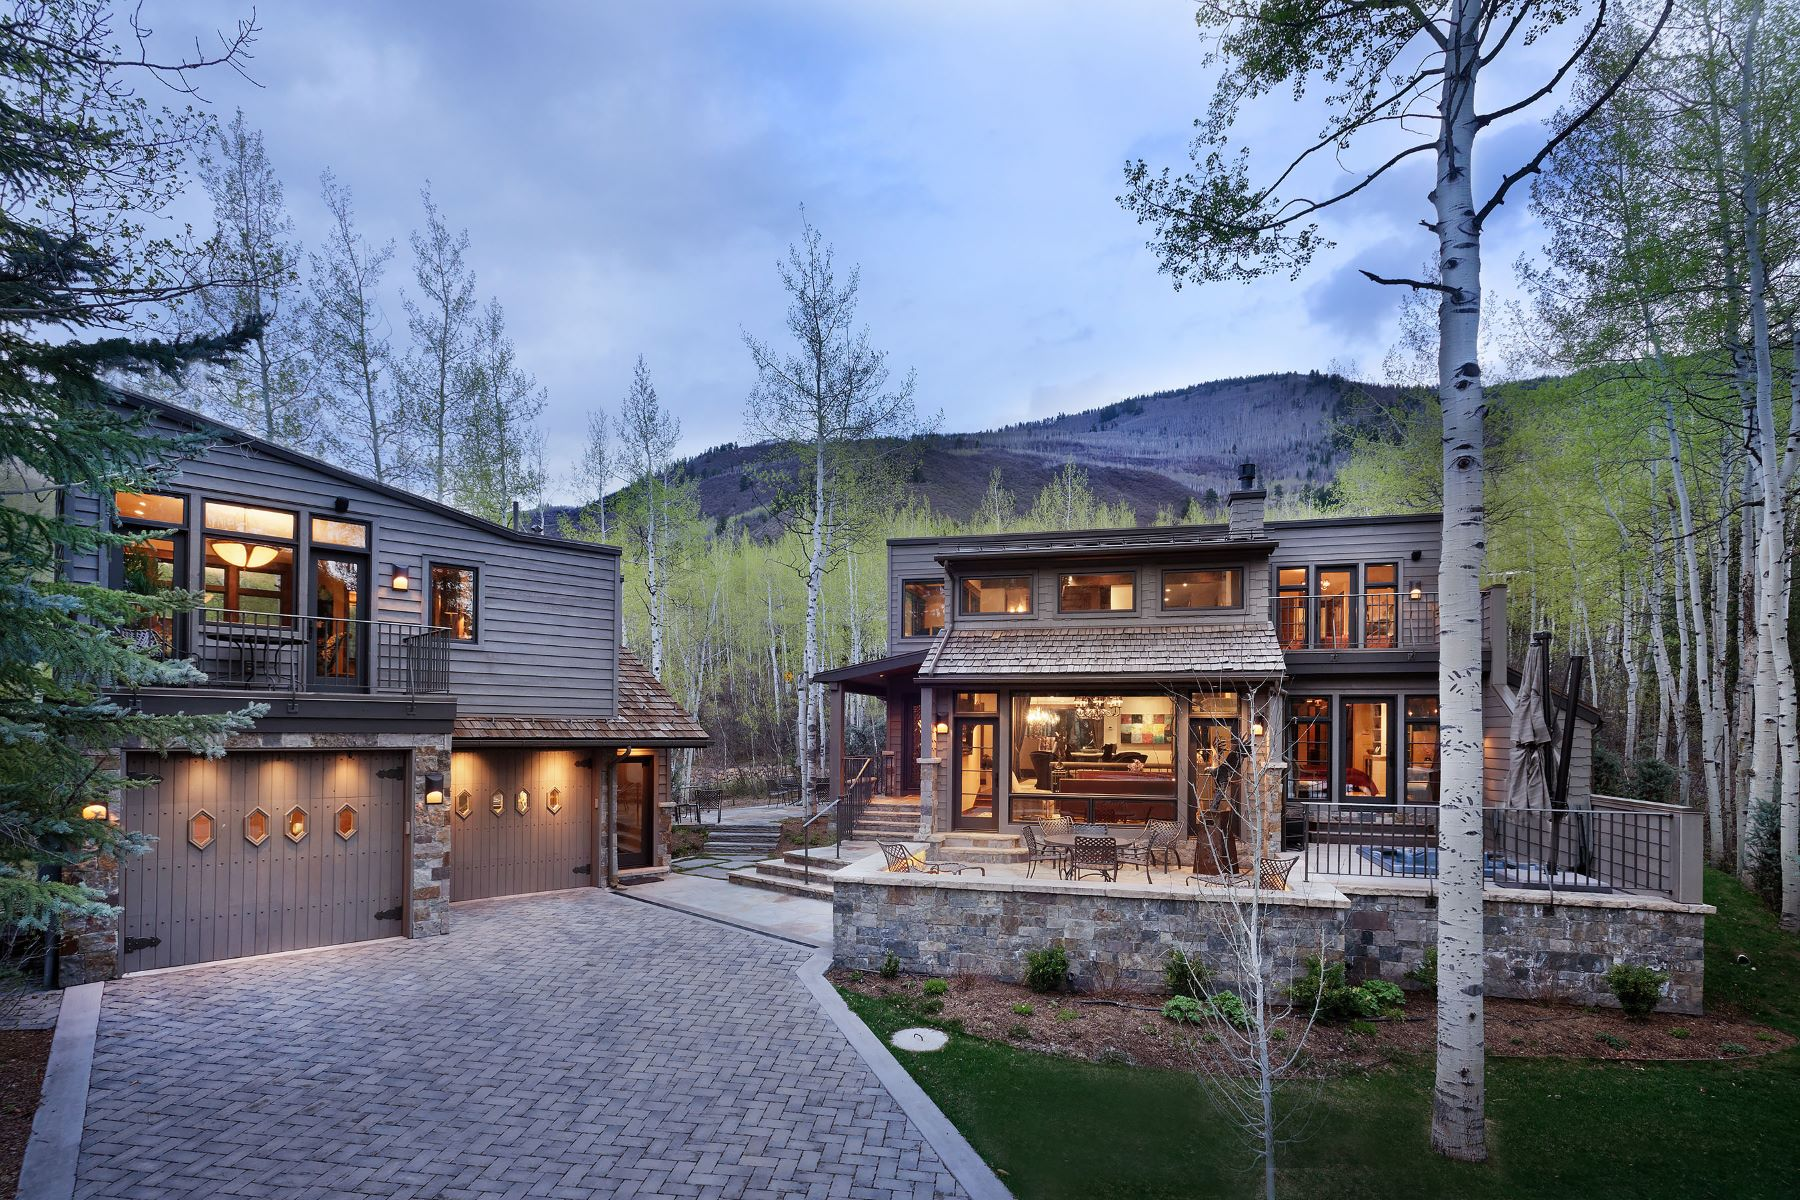 Single Family Home for Sale at End of the Cul-de-Sac Privacy in a Quiet, Natural Setting with Views 1345 Mayflower Court Aspen, Colorado, 81611 United States